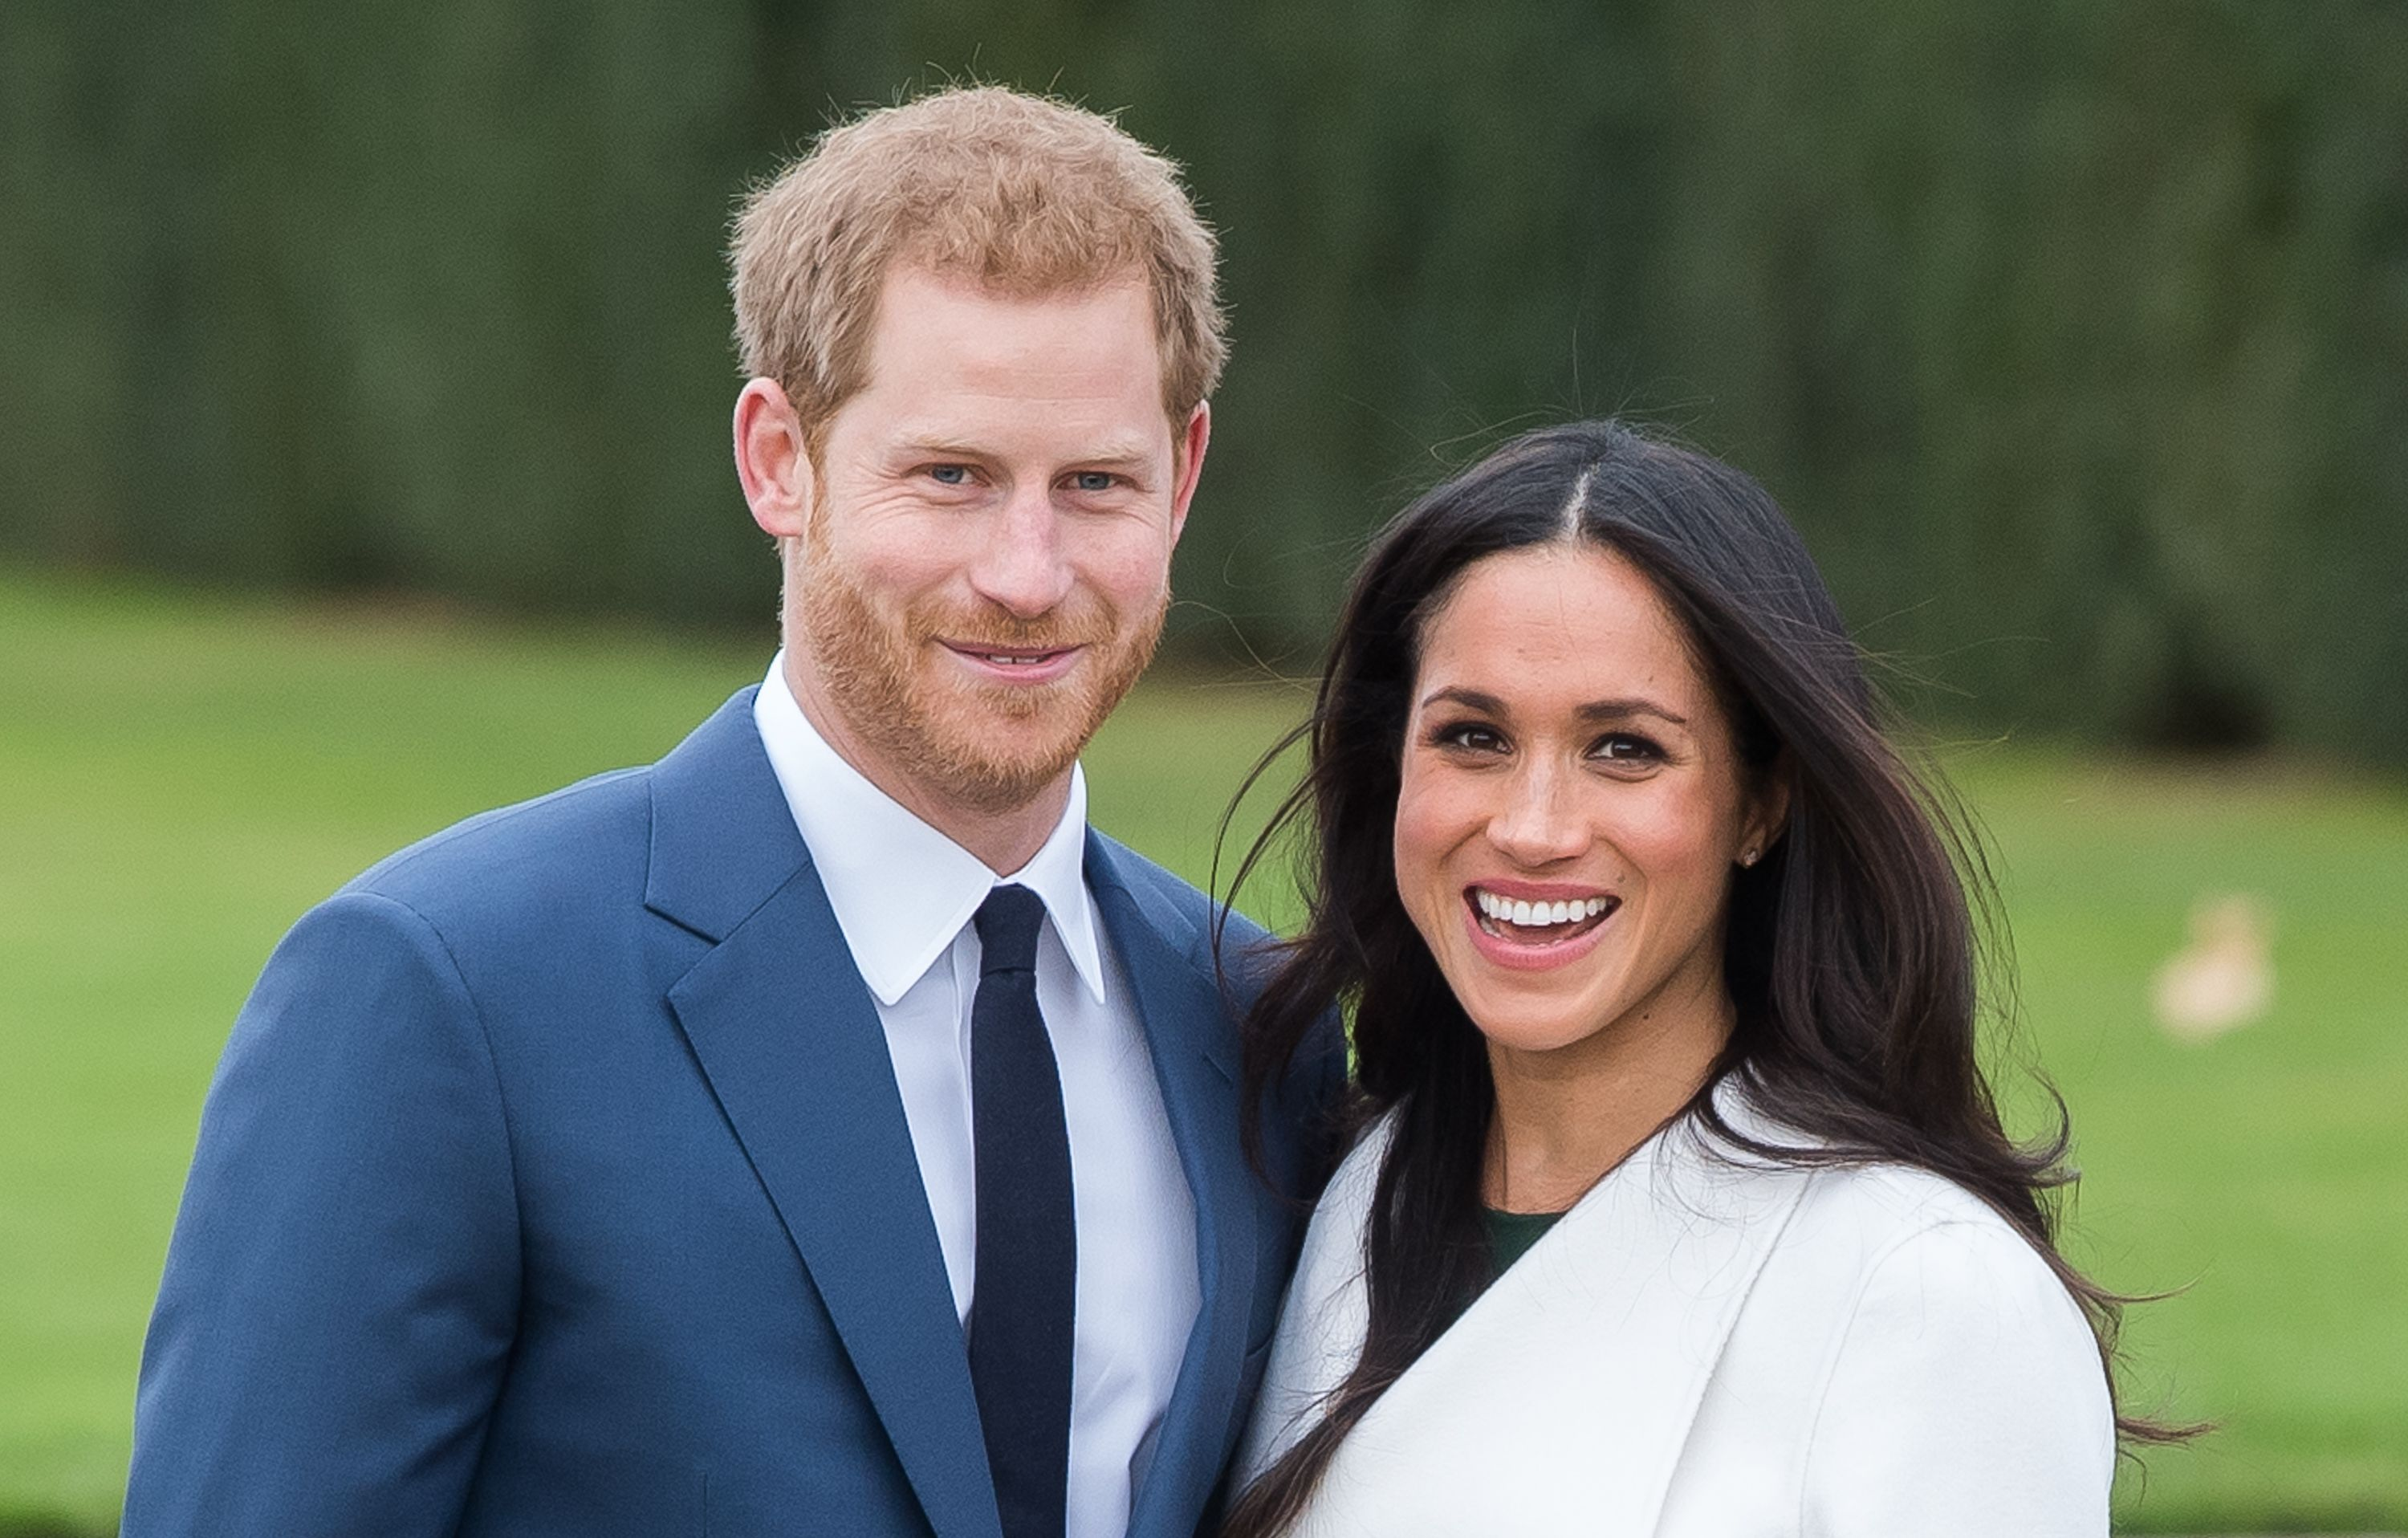 Prince Harry and Meghan Markle during an official photocall to announce their engagement at The Sunken Gardens at Kensington Palace | Photo: Getty Images